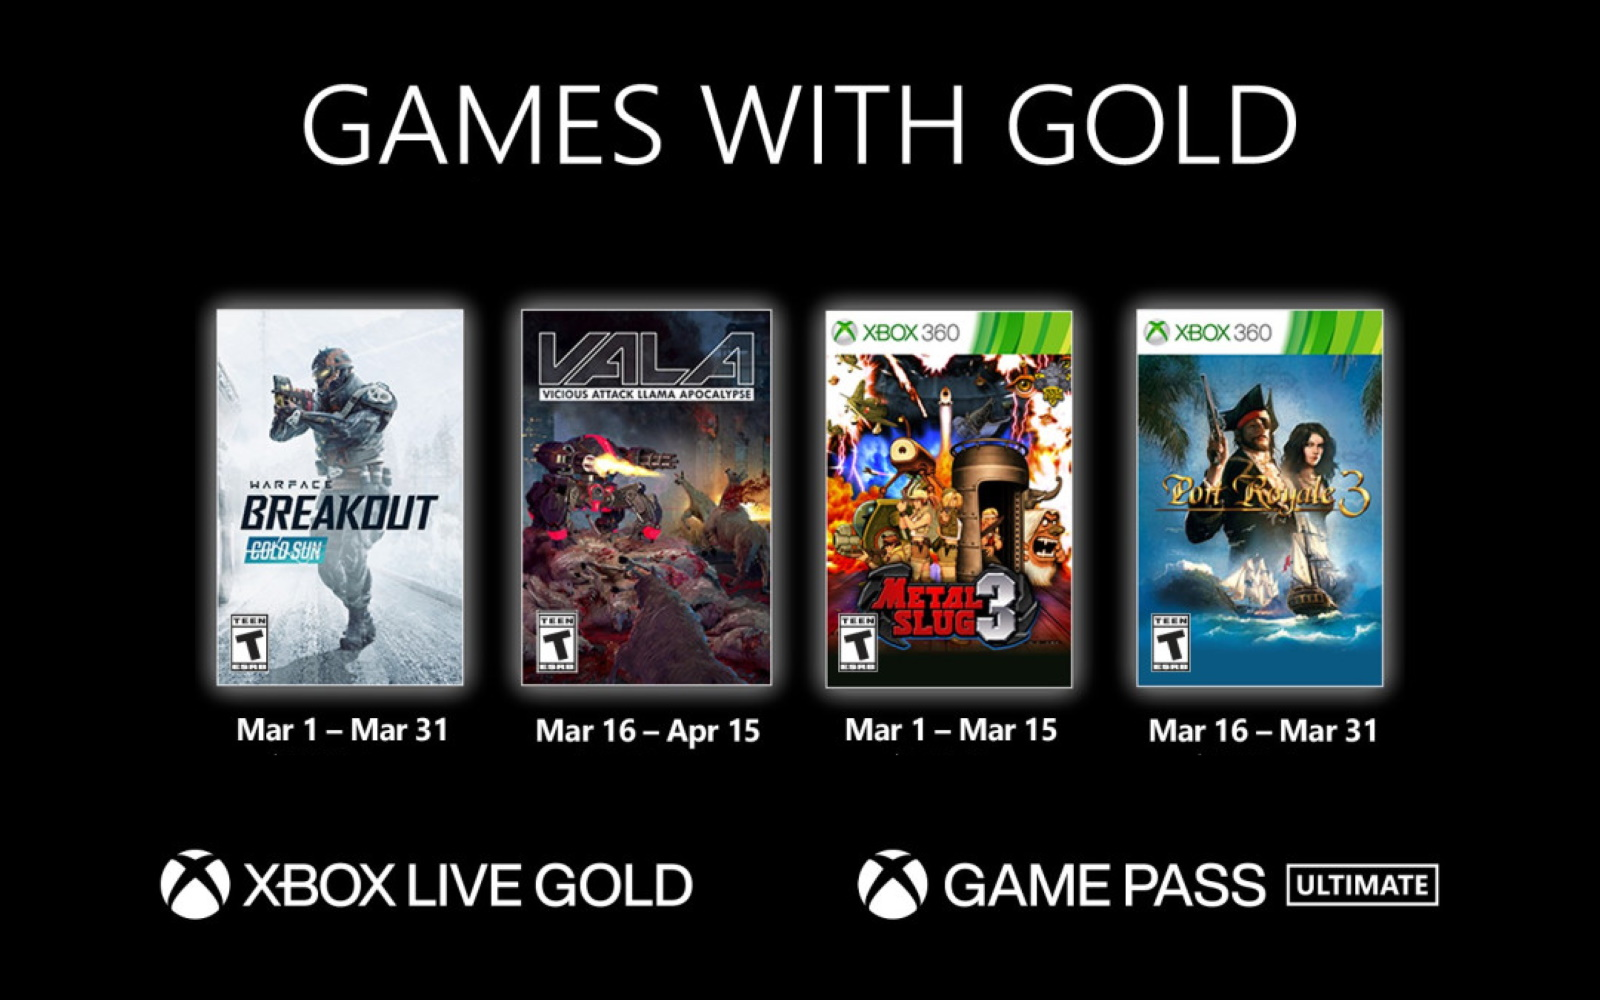 Games With Gold Titles Available In March